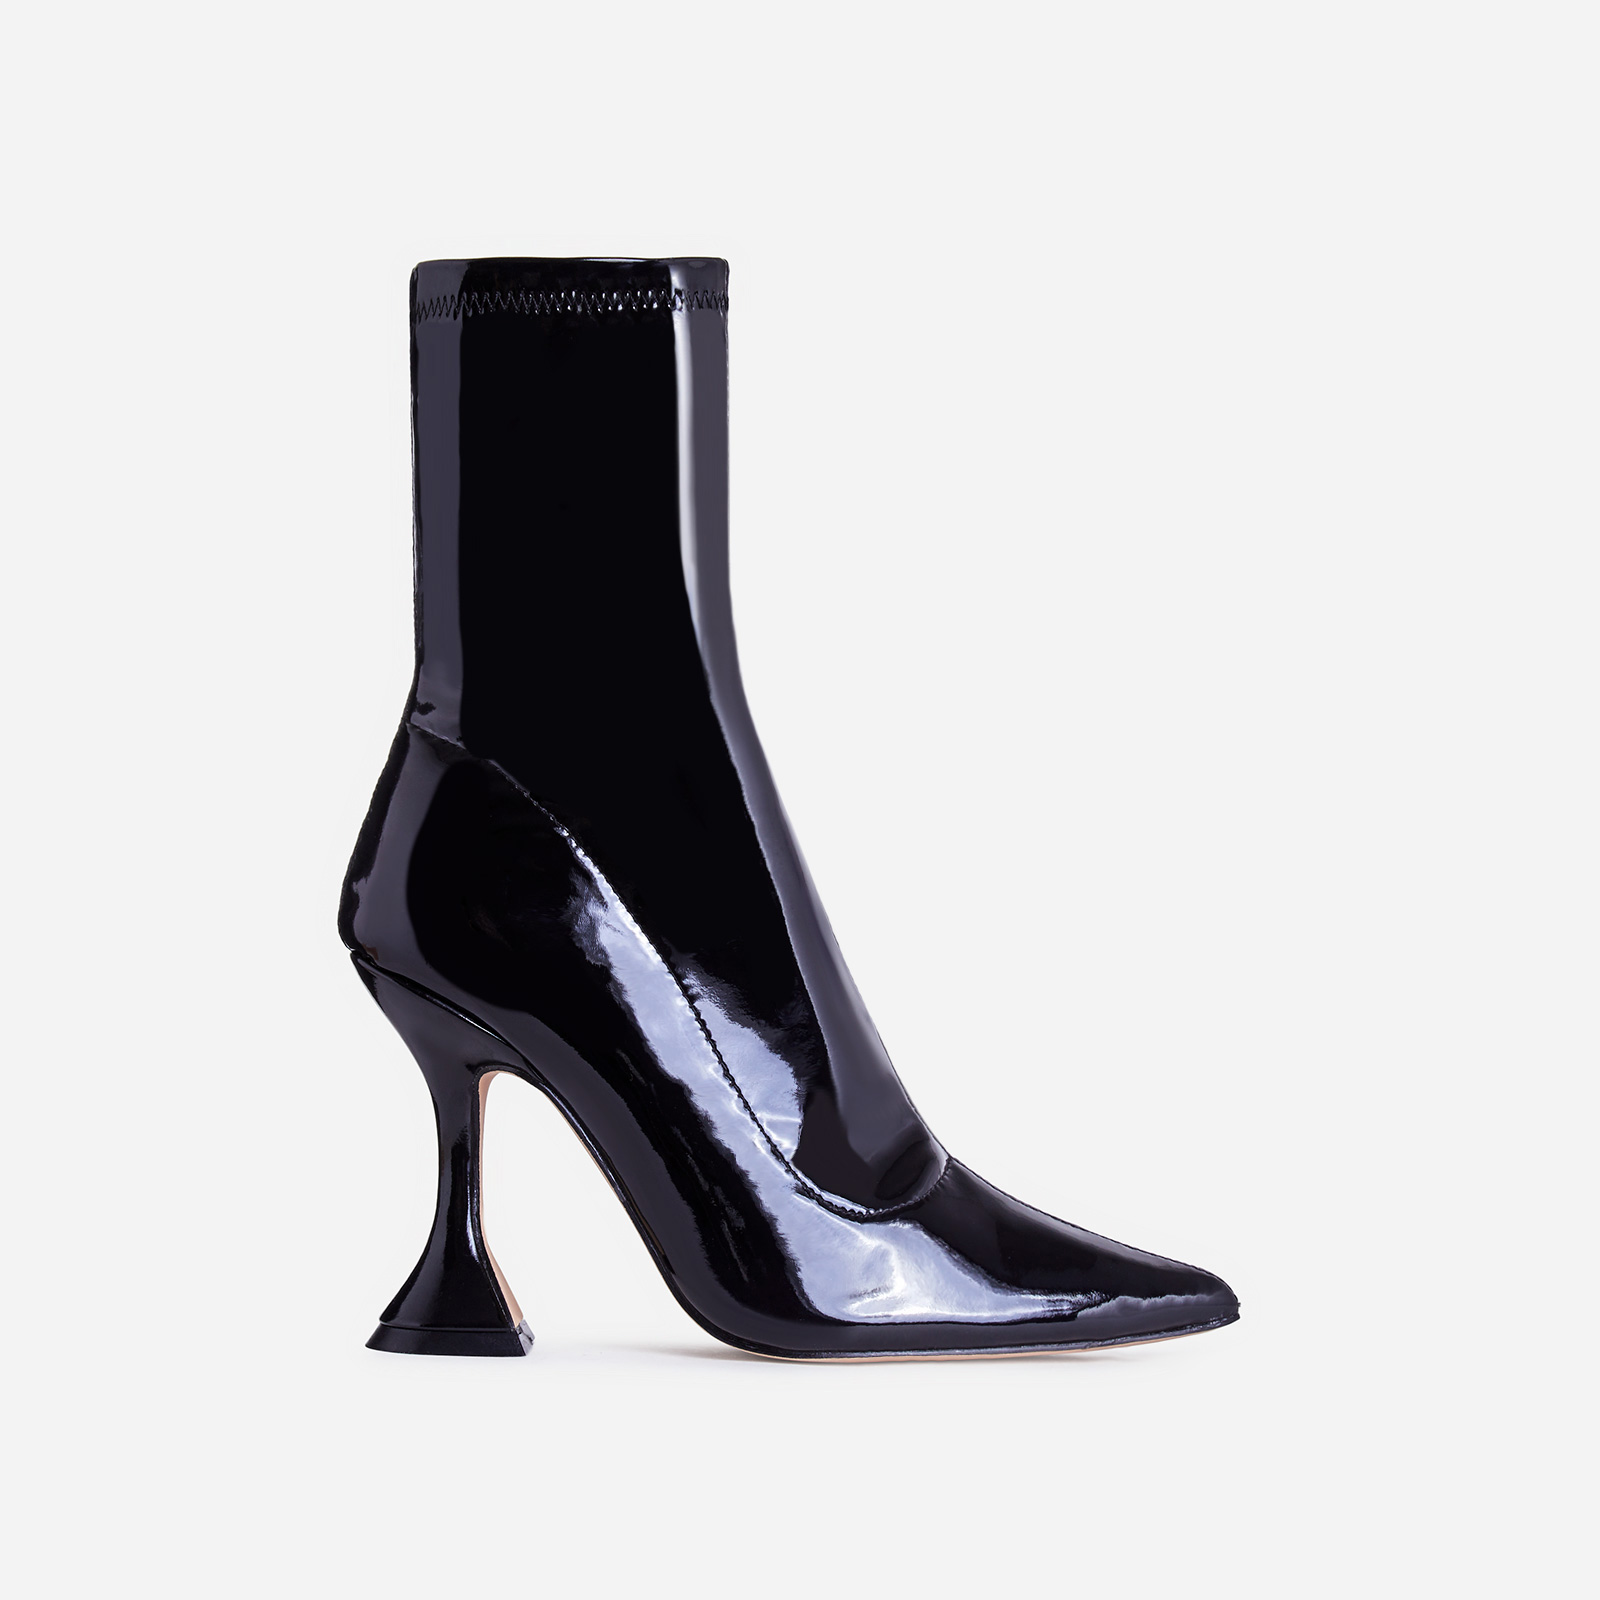 Flore Pyramid Heel Ankle Boot In Black Patent